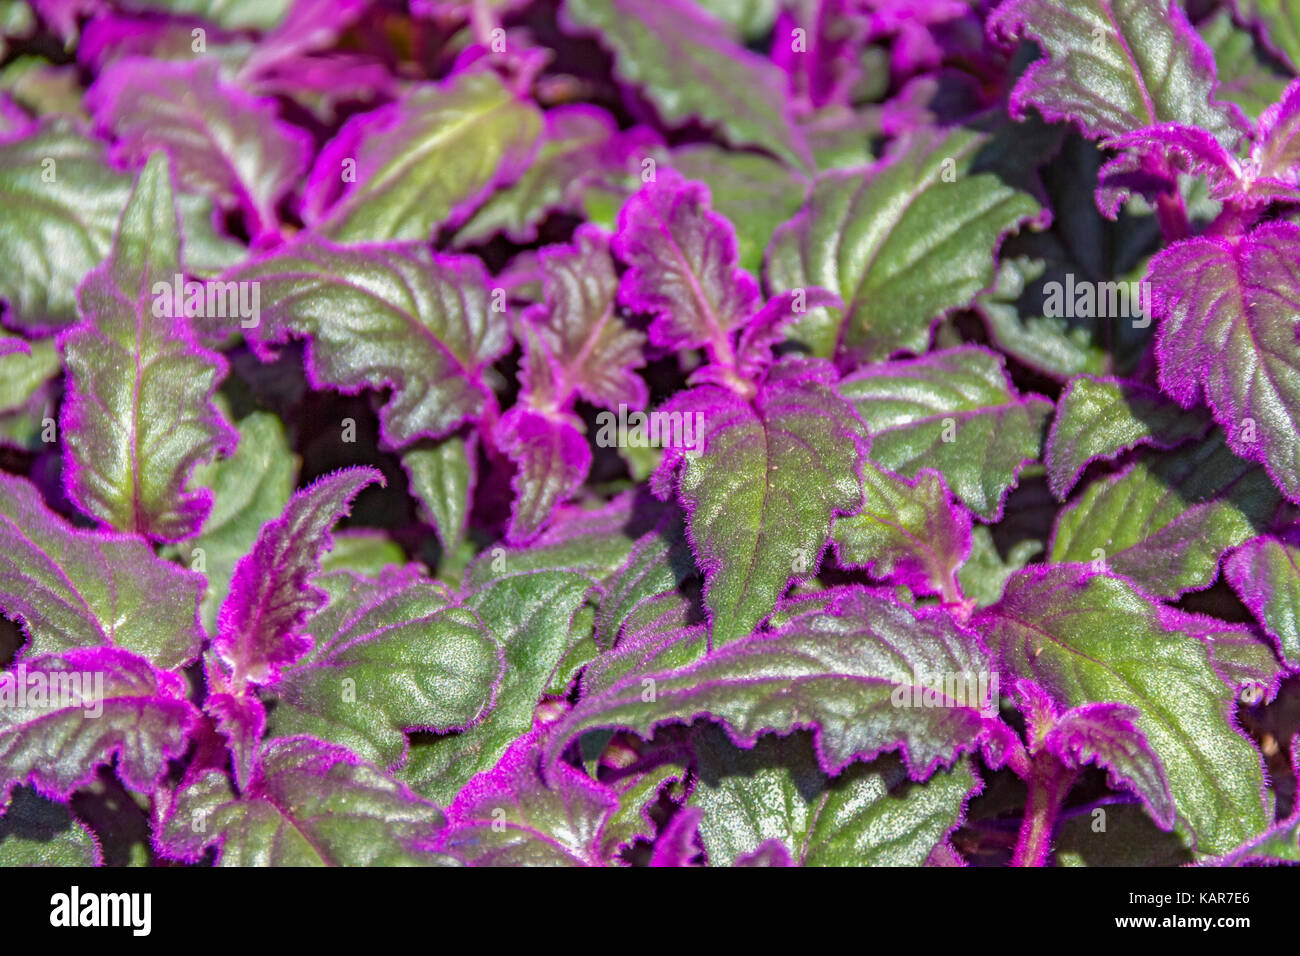 detail shot of some green Gynura leaves with violet fluff - Stock Image